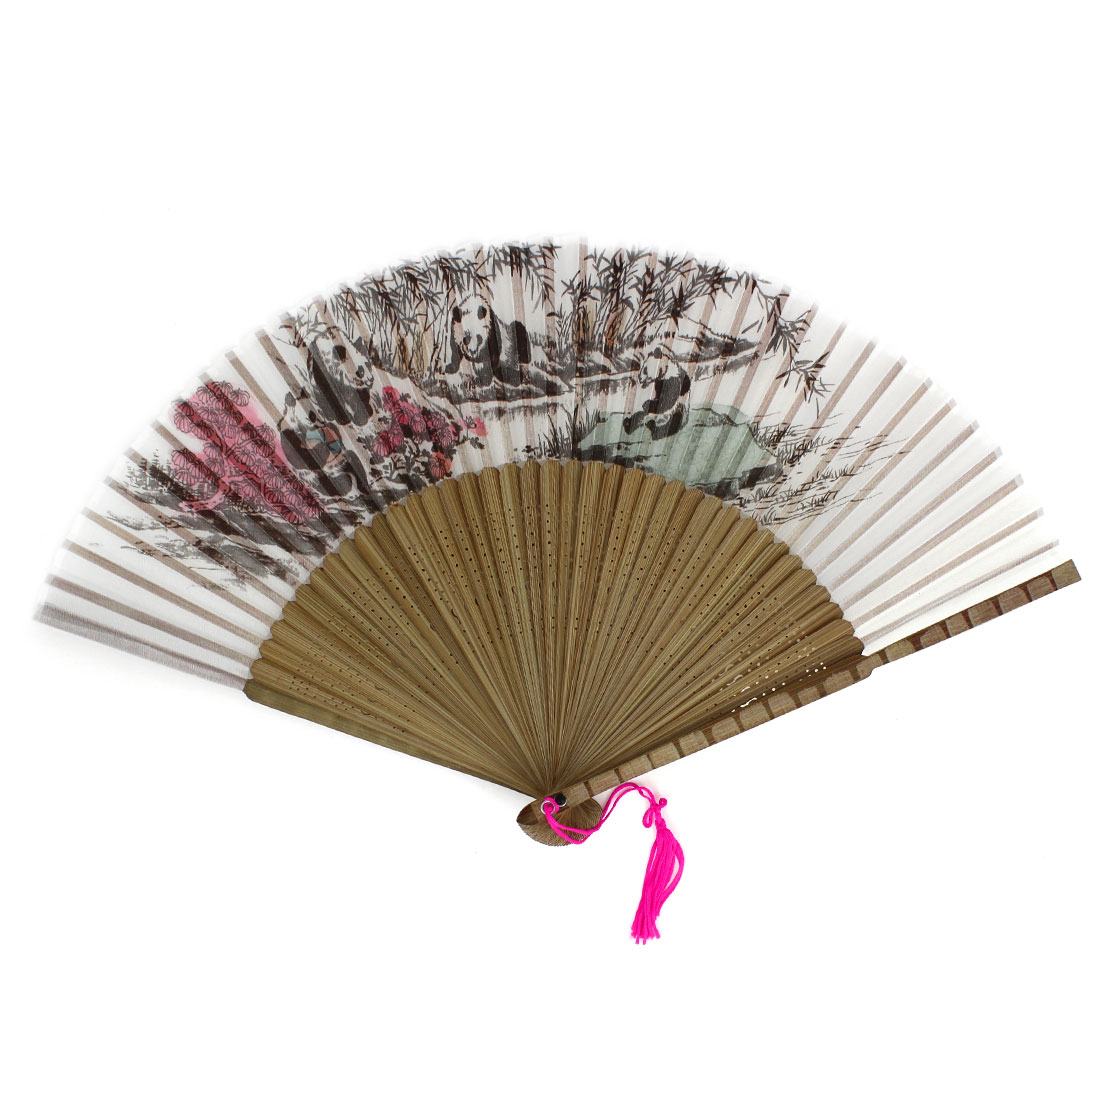 Pandas Bamboo Pattern Tassels Decor Hollow out Ribs Folding Hand Fan Gray